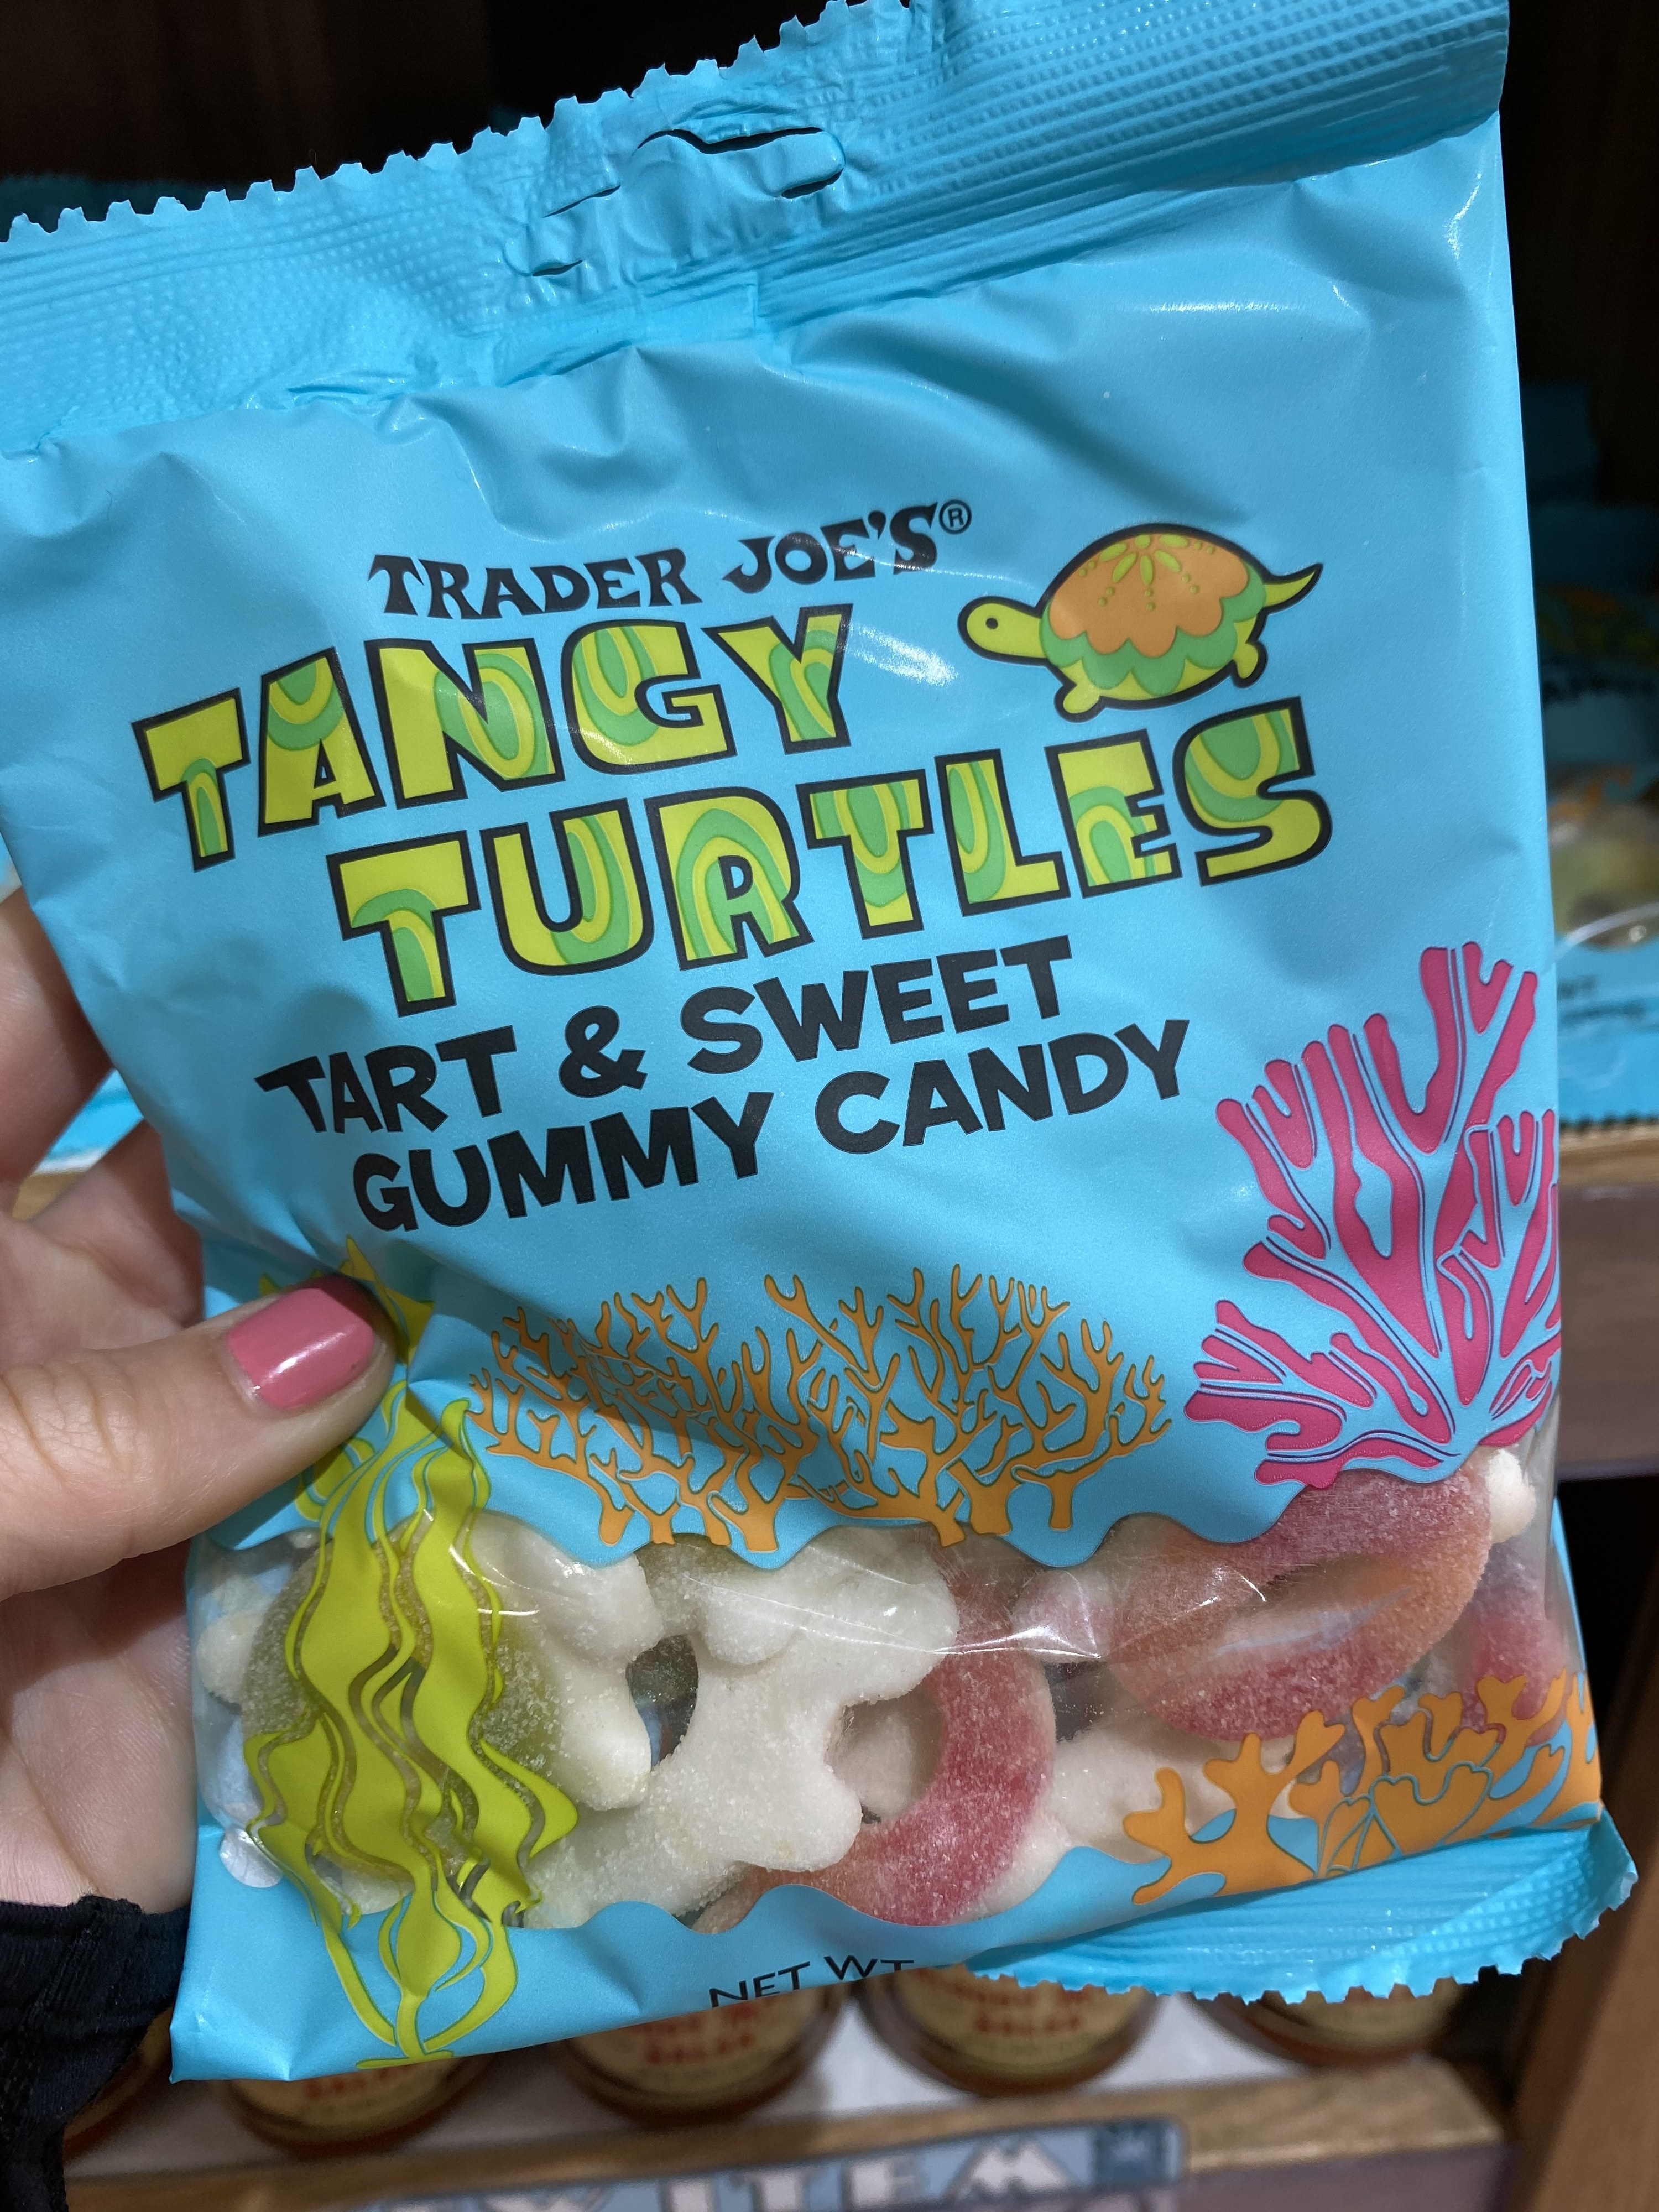 A bag of tart and sweet gummy turtles.